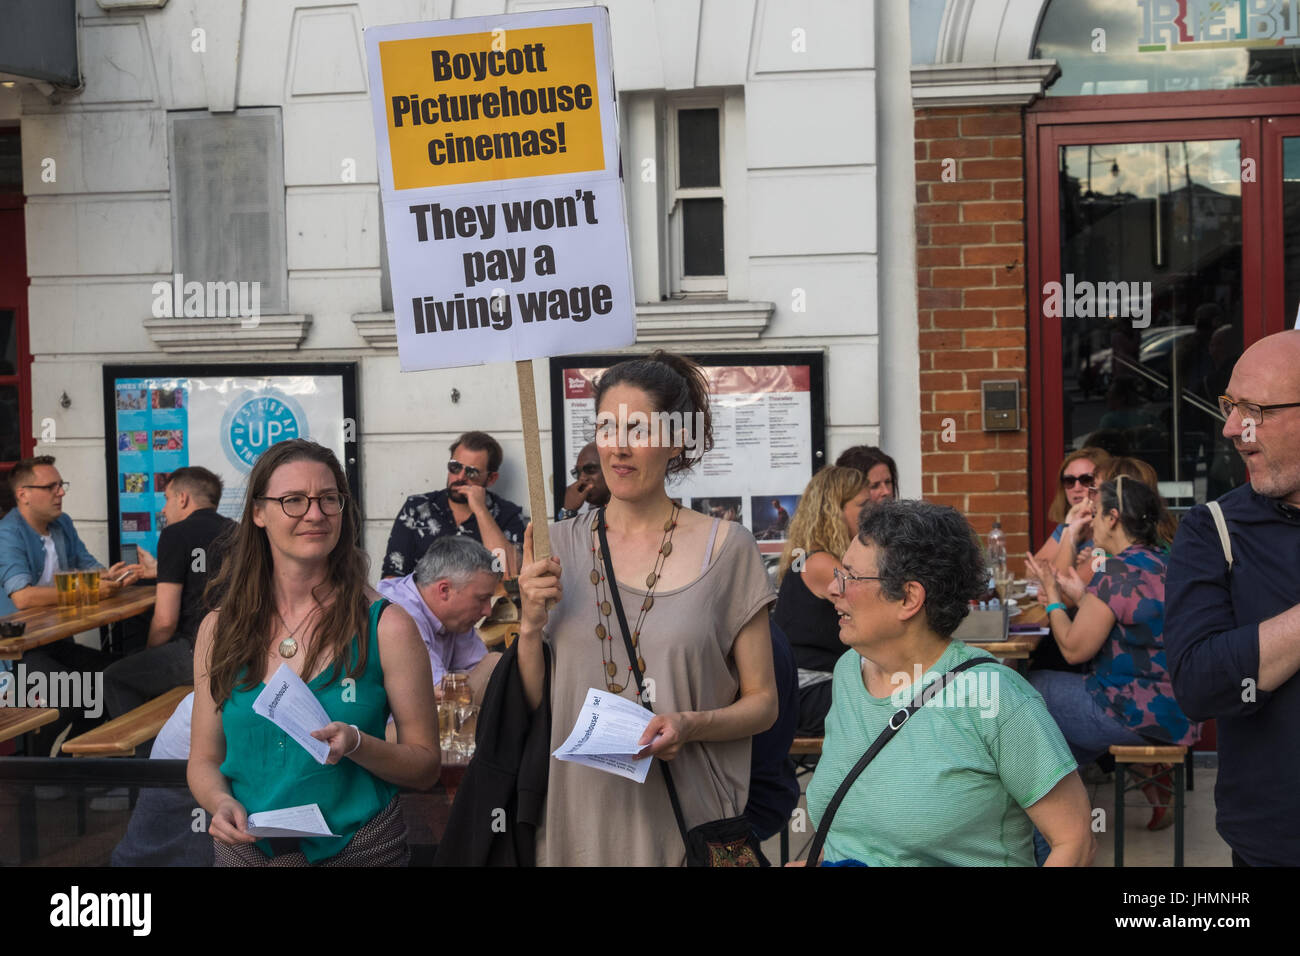 July 14, 2017 - London, UK - London, UK. 14th July 2017. A community protestby local cinema-goers outside Brixton's Stock Photo